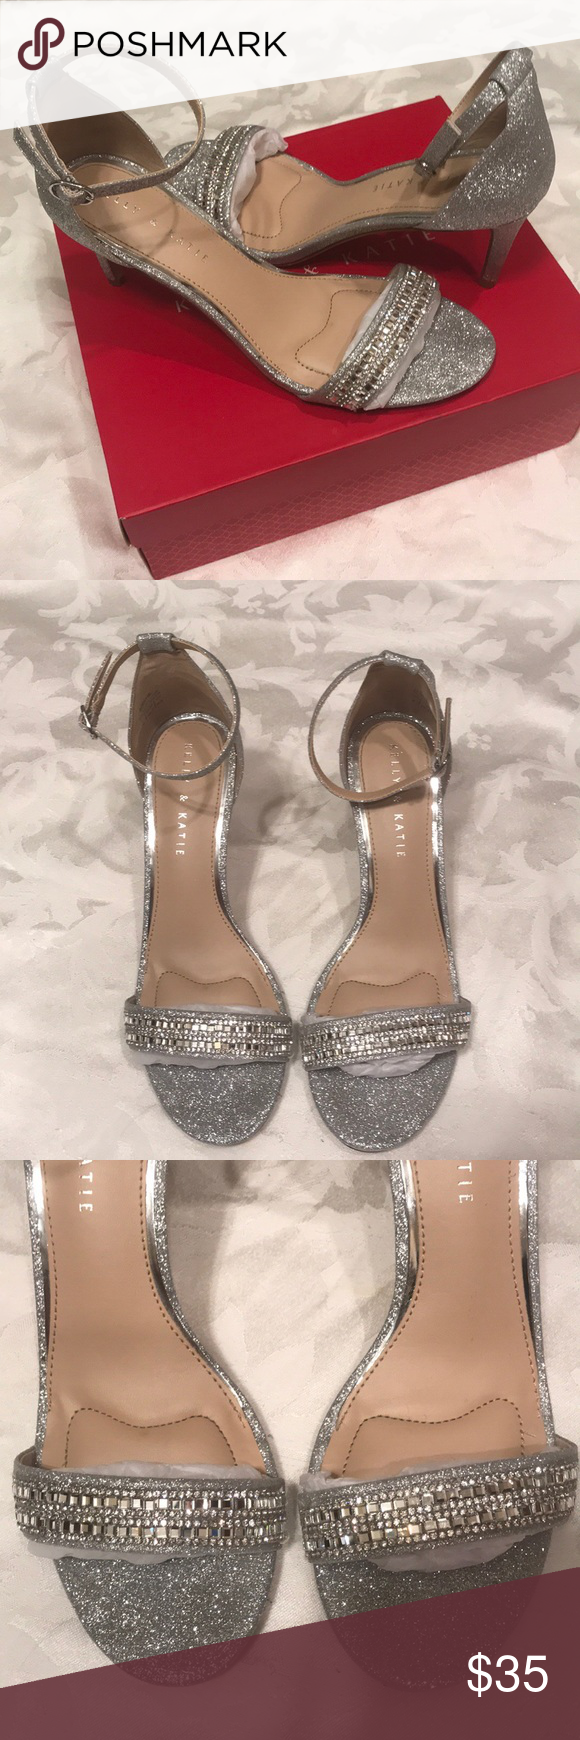 """c249275c3f1 Kelly   Katie Kirstie Sandal - Silver Glitter Adjustable ankle strap  closure. Round open toe. Cushioned footbed. 3"""" covered heel. Silver  Metallic Glitter."""